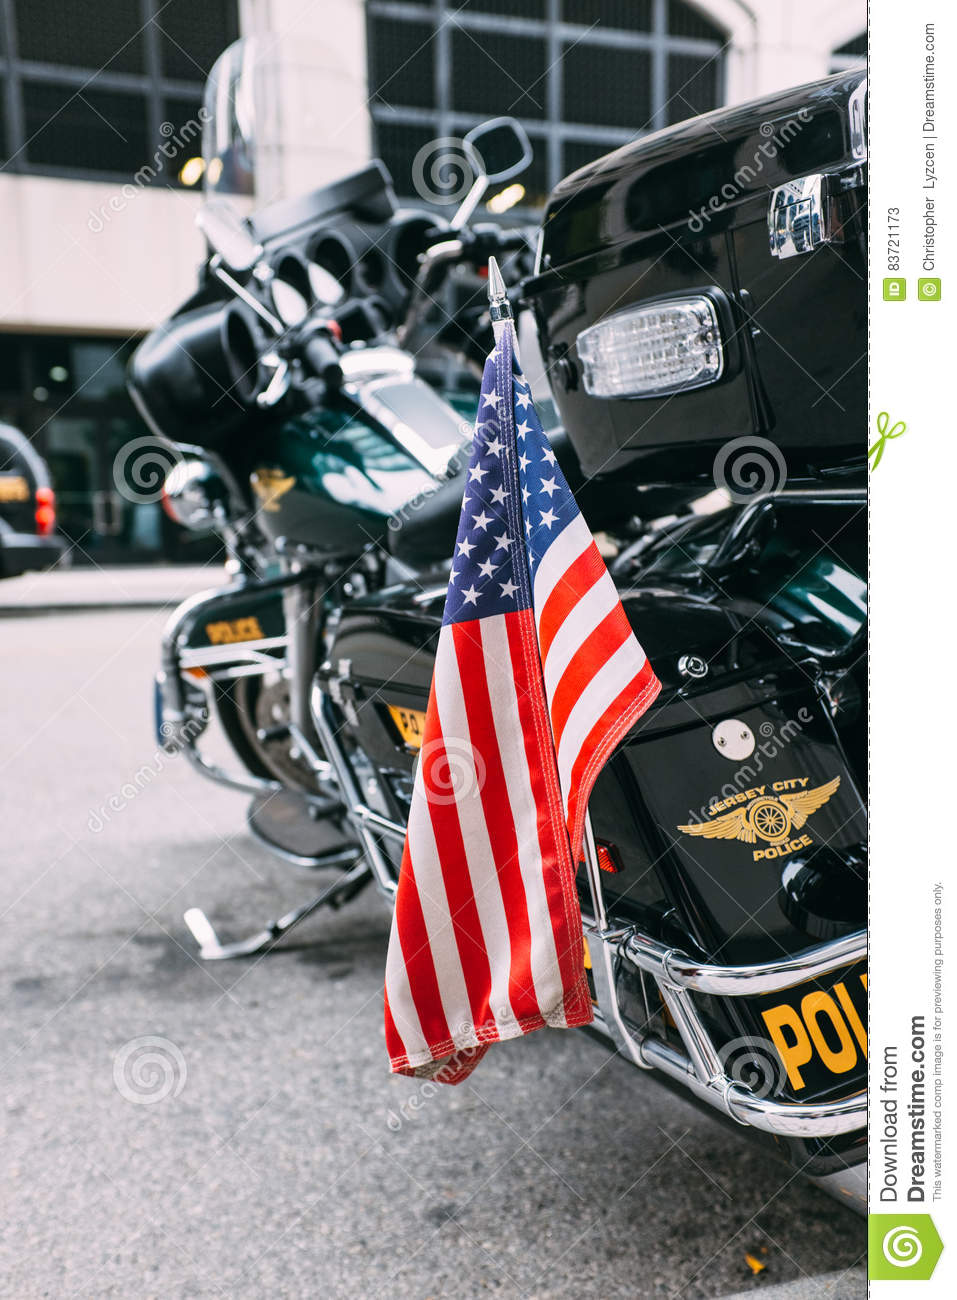 9/11/2012 - Vertical Image Of Police Bike Editorial Stock Photo